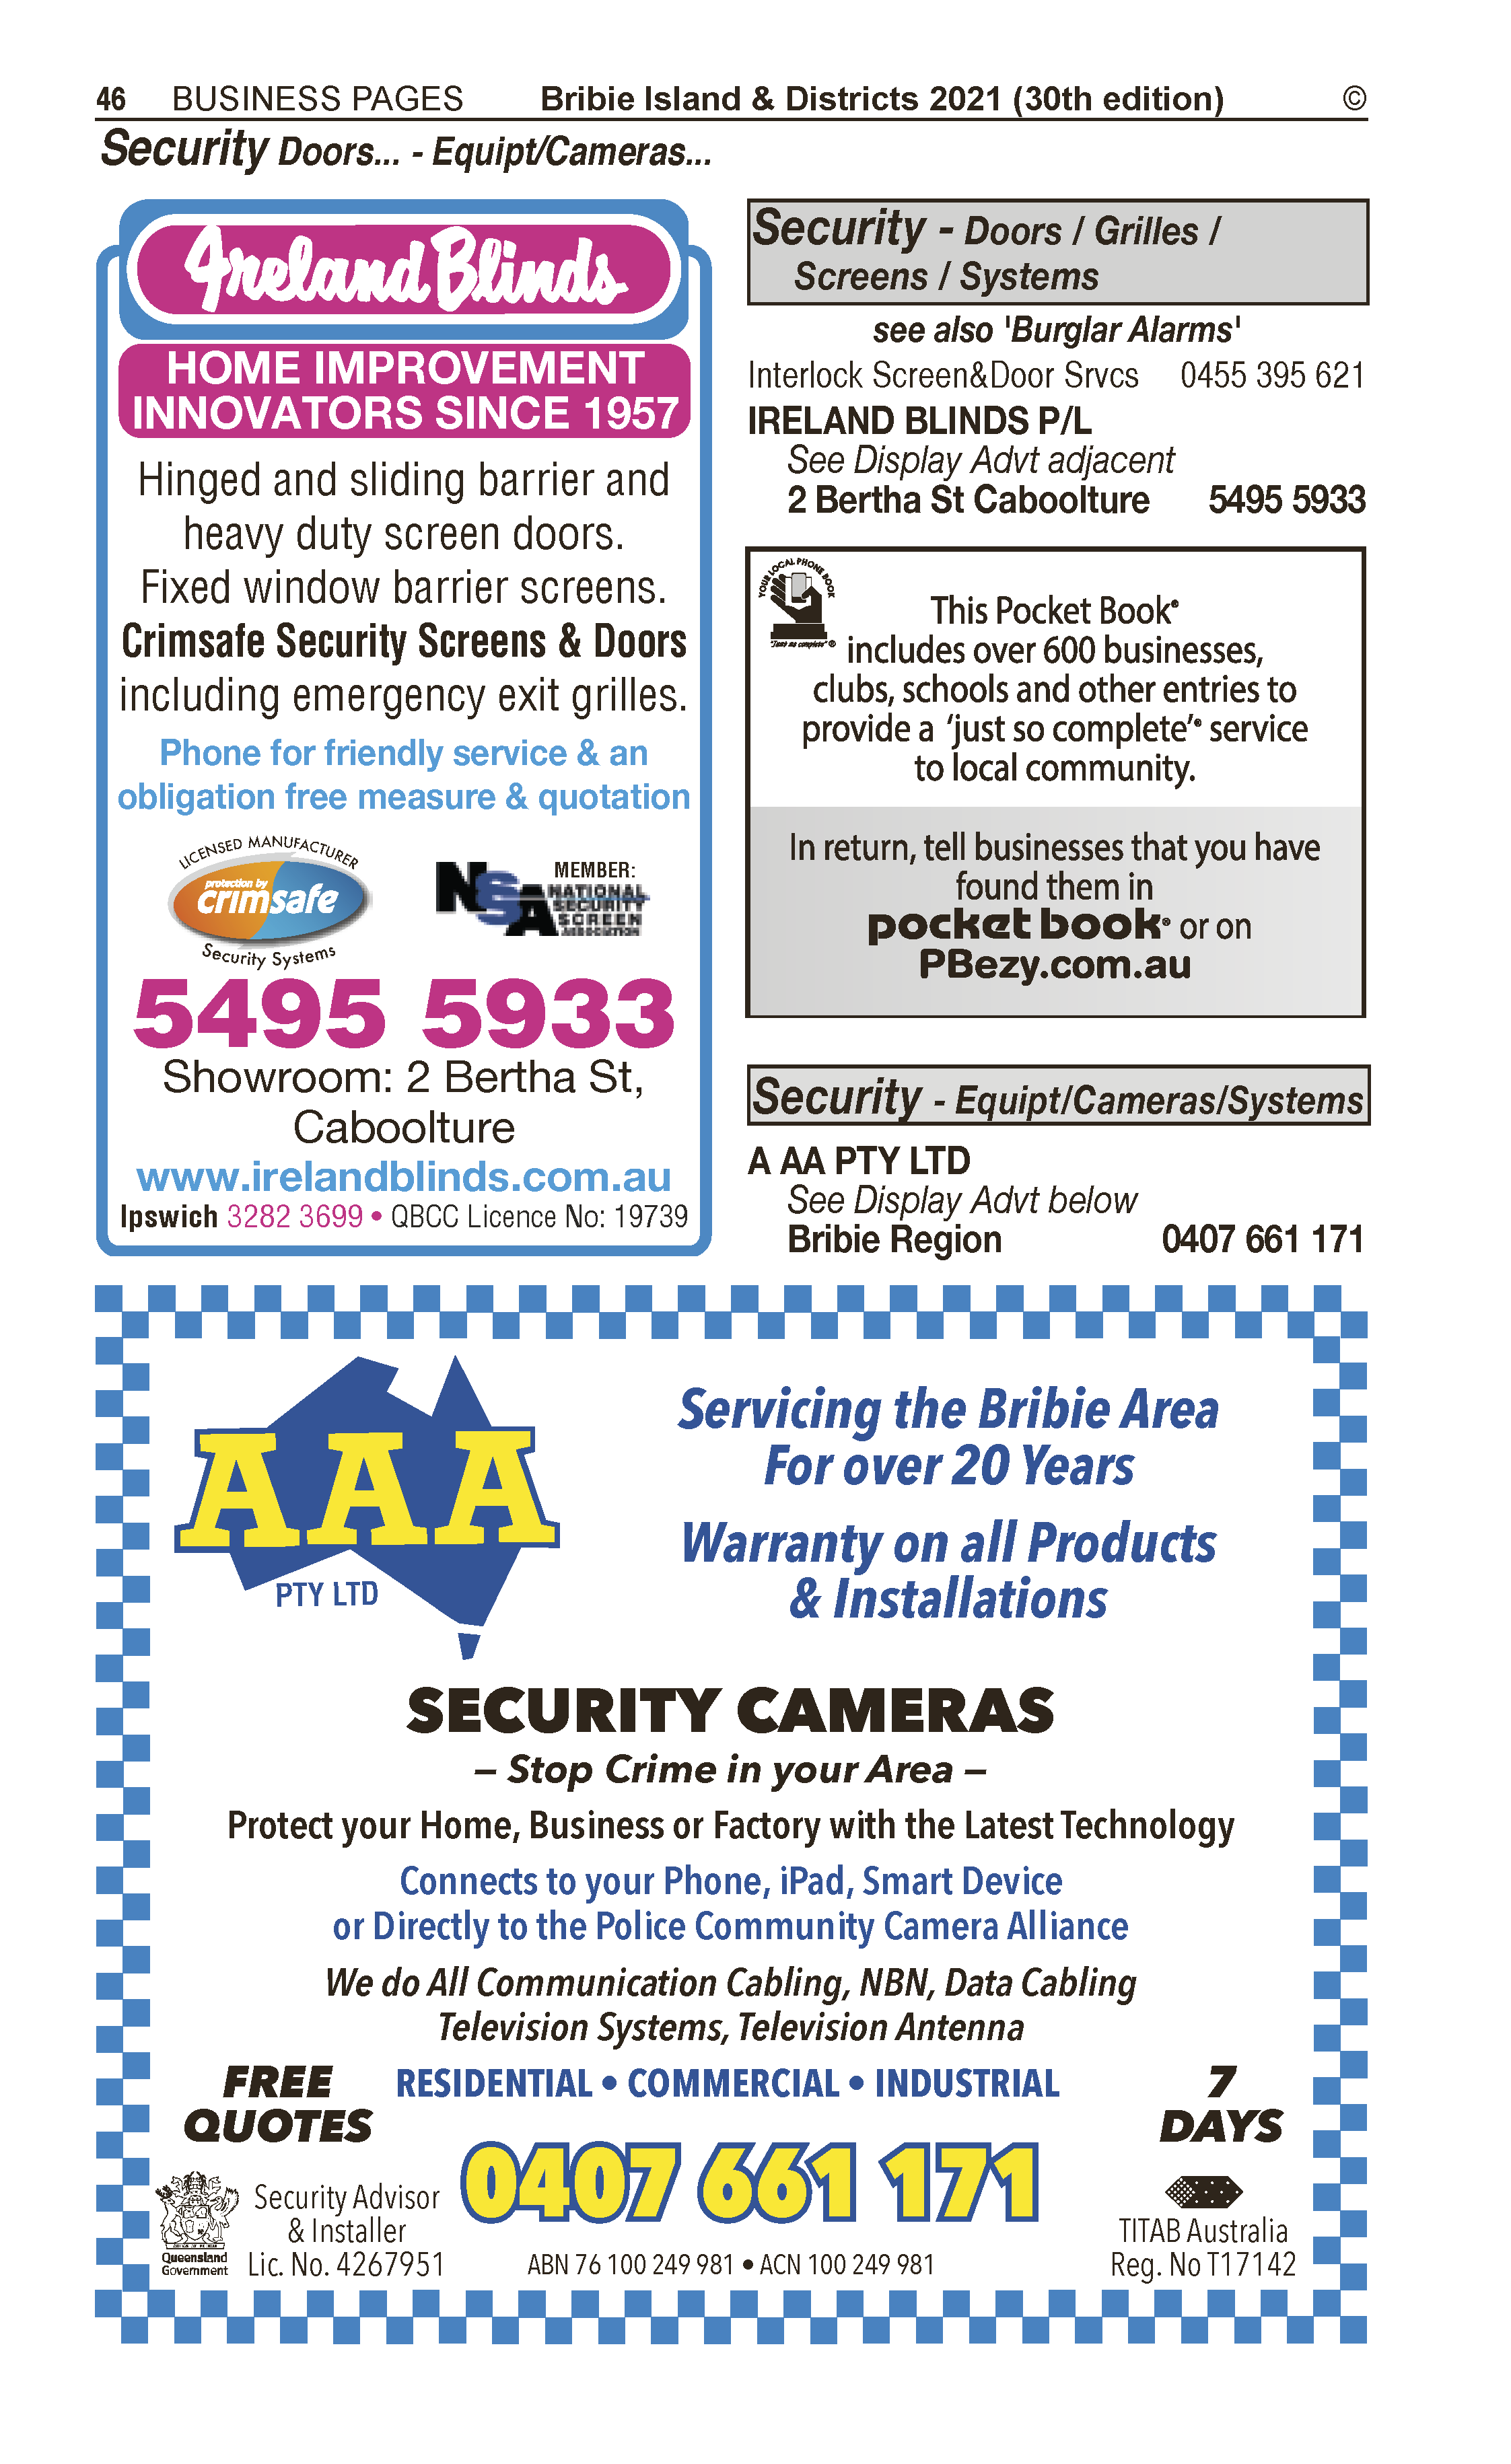 AAA Pty Ltd | Security – Equipment in Bribie Island | PBezy Pocket Books local directories - page 46